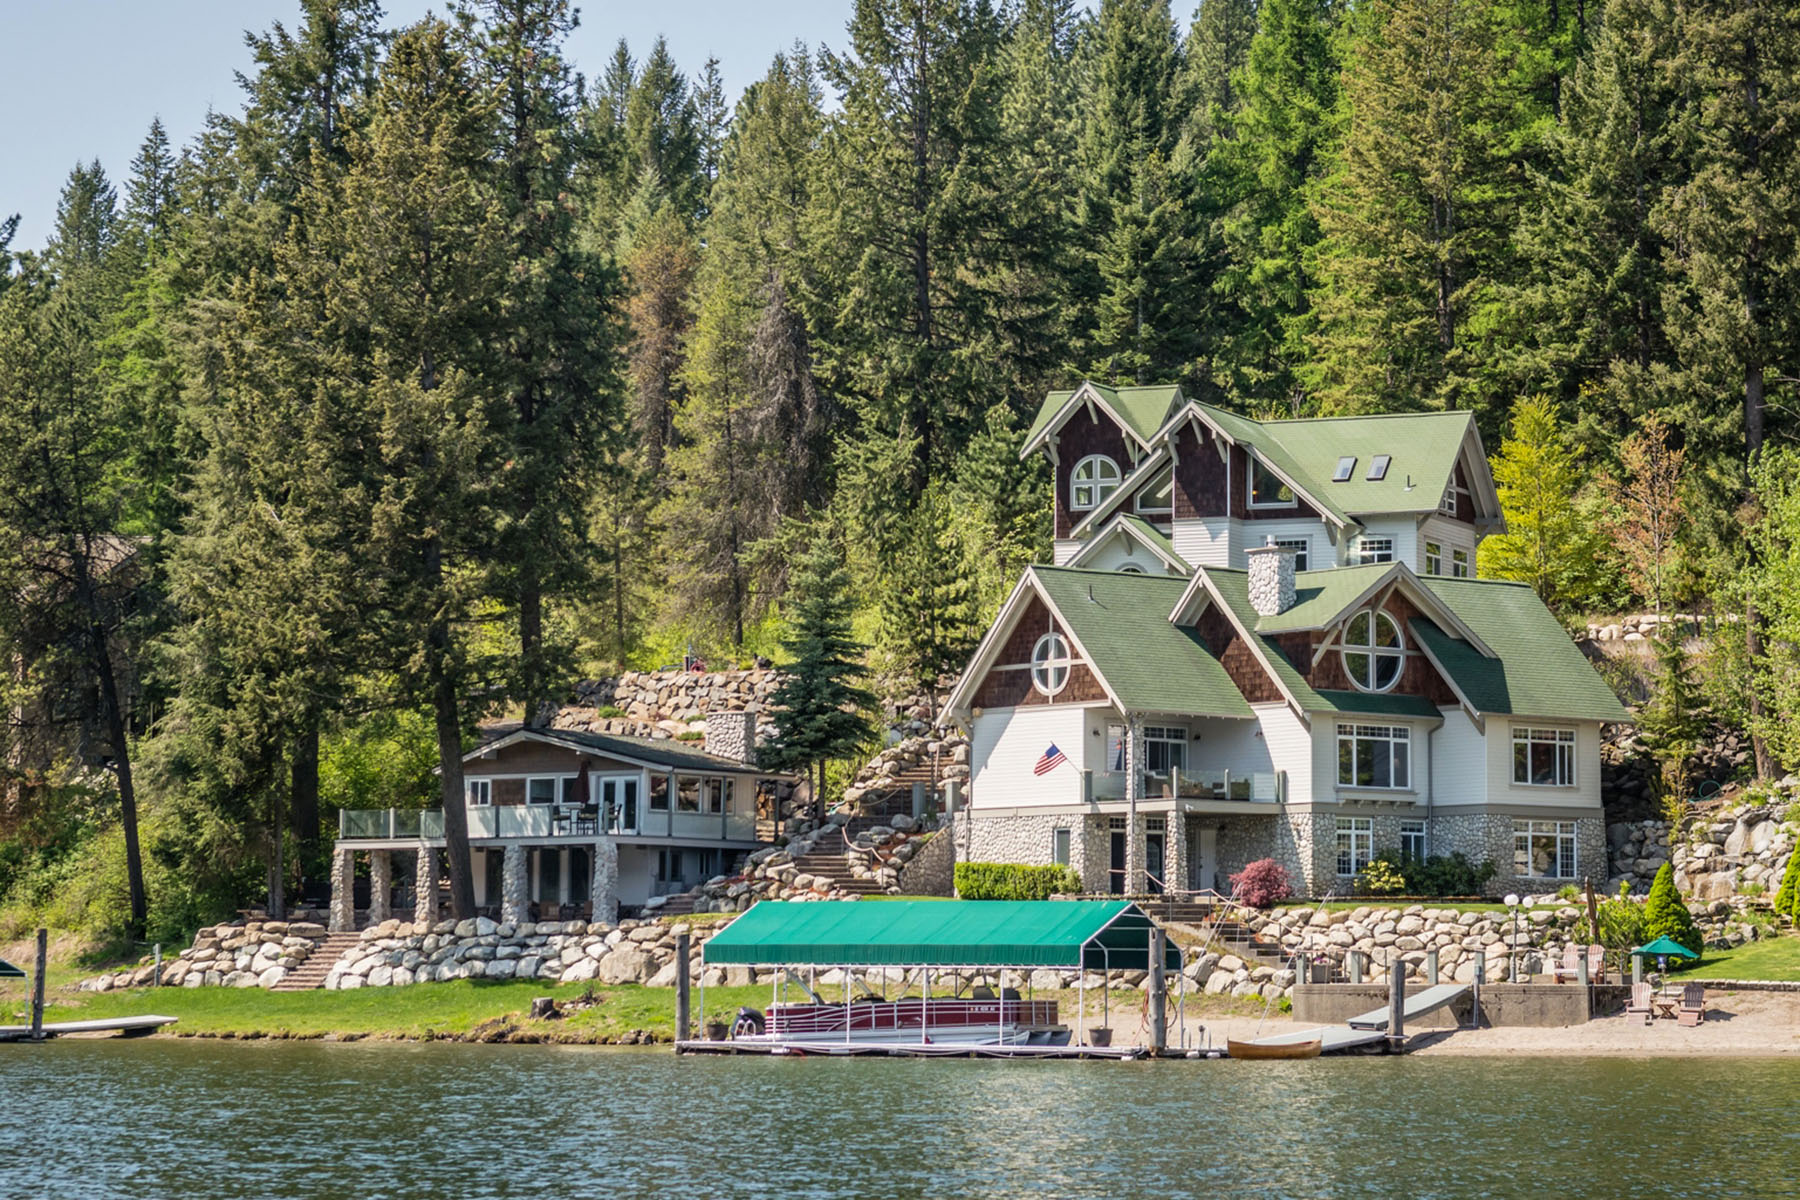 Single Family Home for Sale at Lakefront Estate 3750 S WESTWAY Drive Coeur D Alene, Idaho 83814 United States